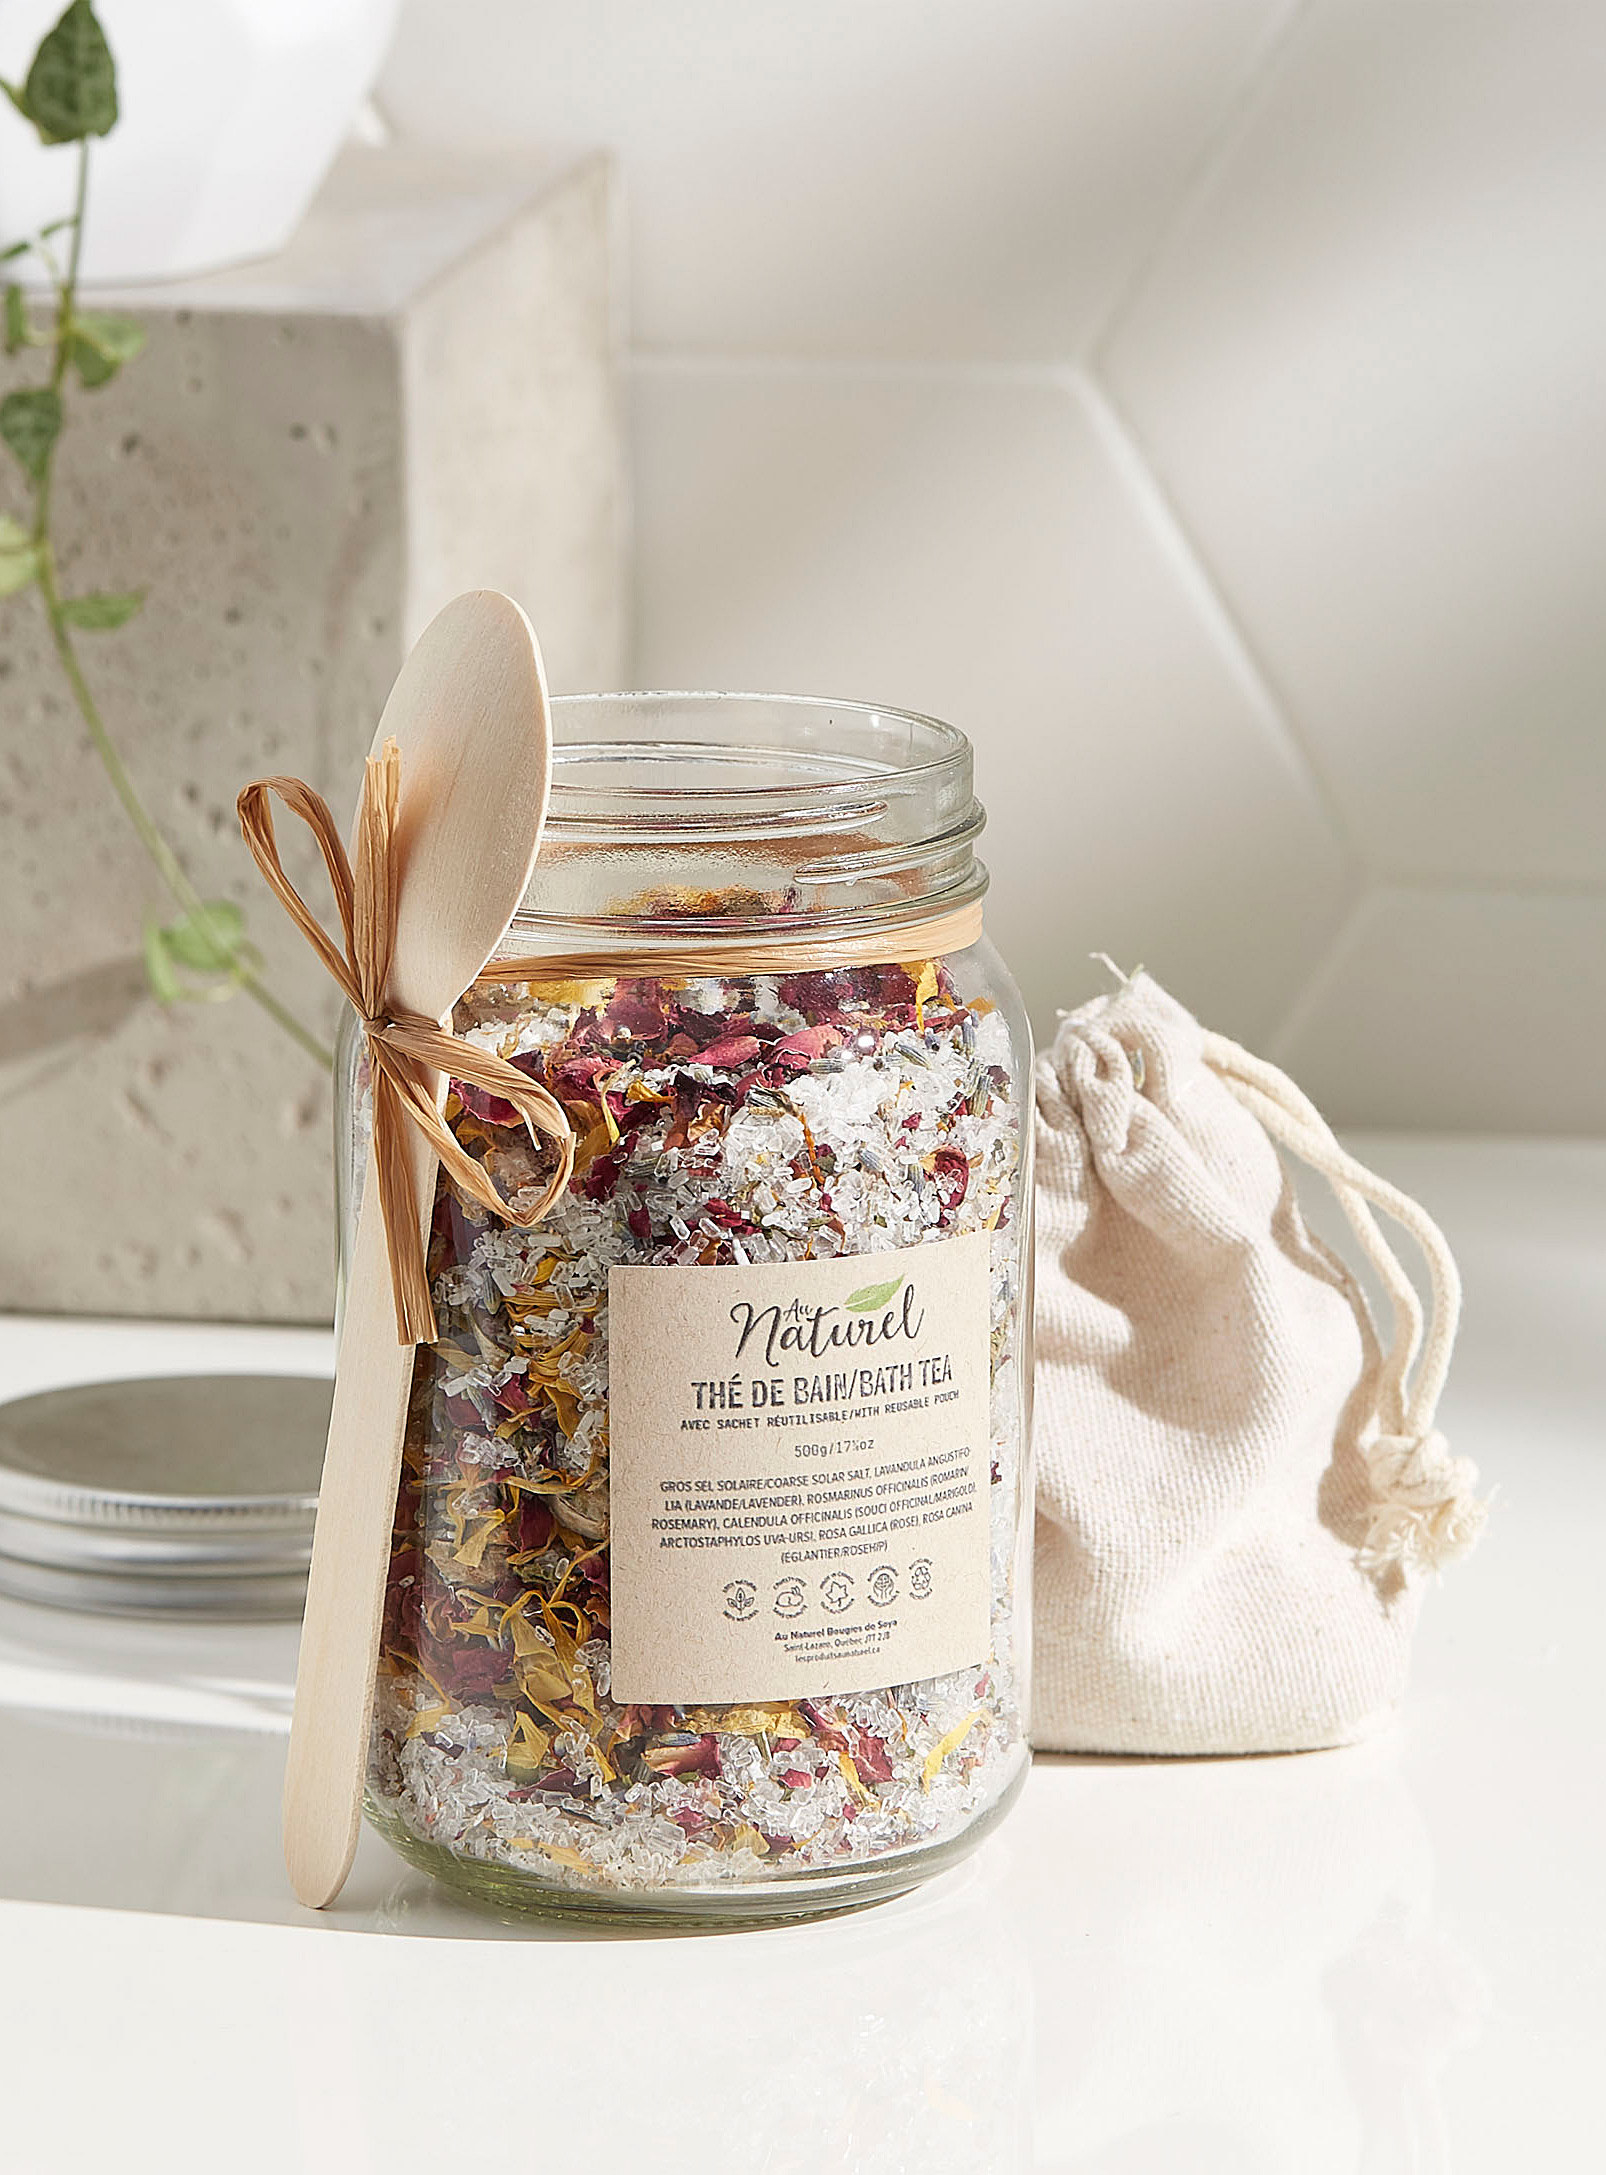 A jar full of dried flowers